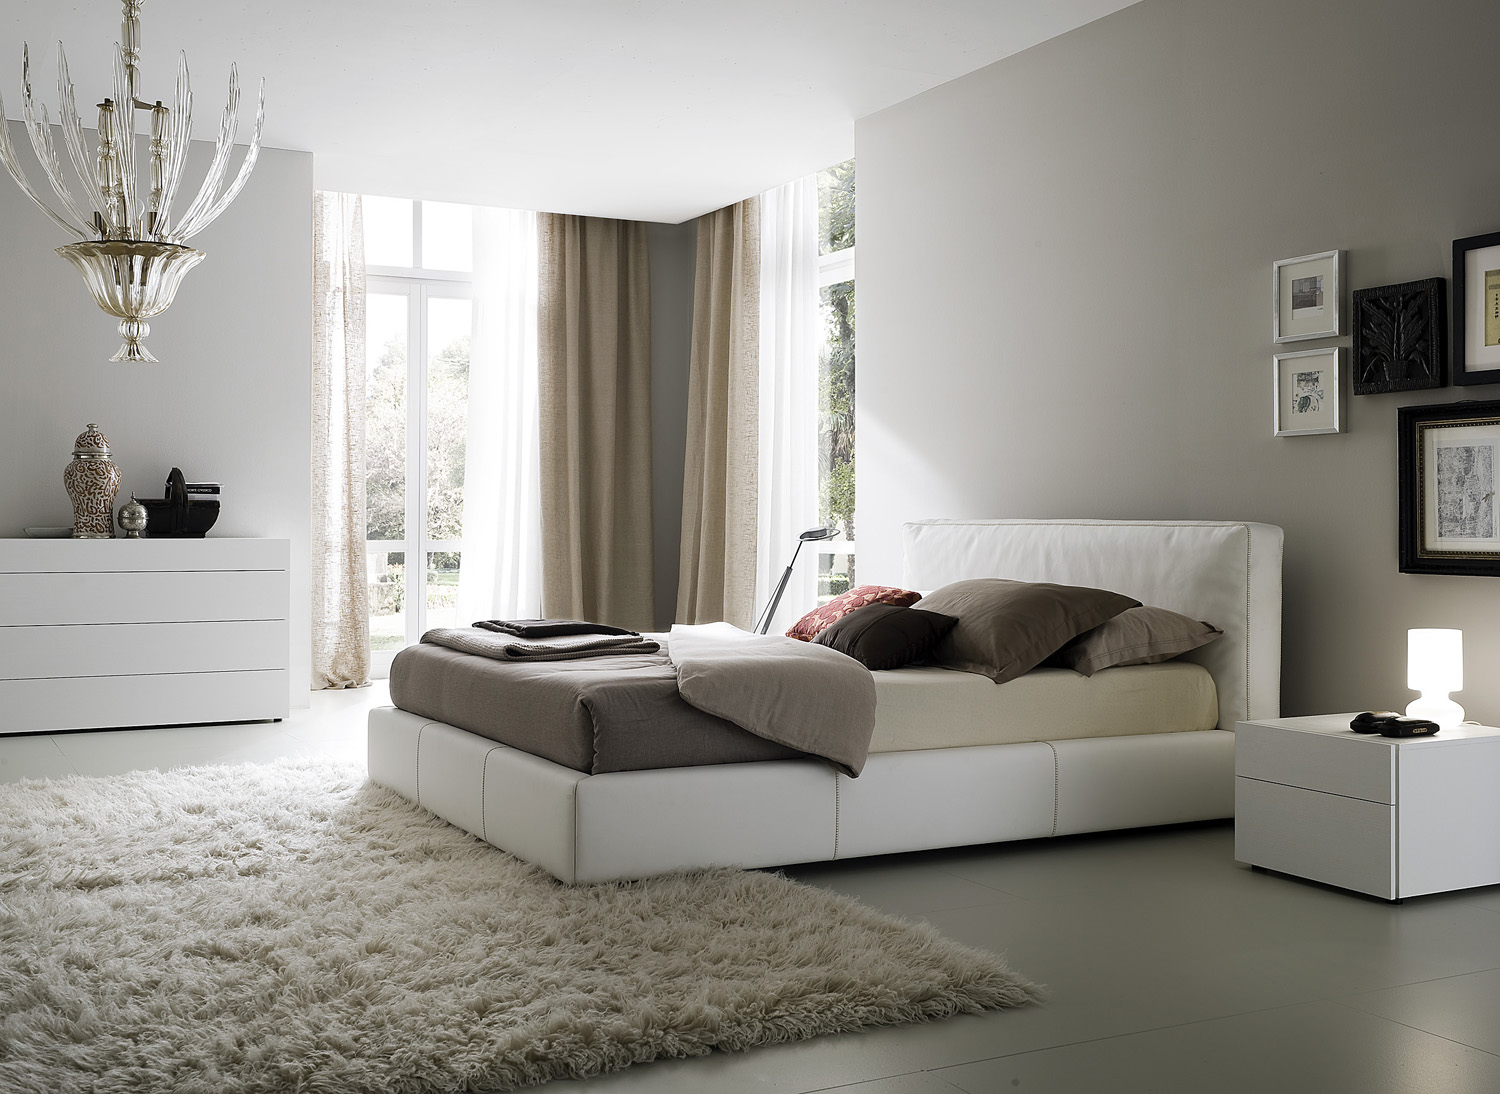 Bedroom decorating ideas from evinco Modern bedroom designs 2012